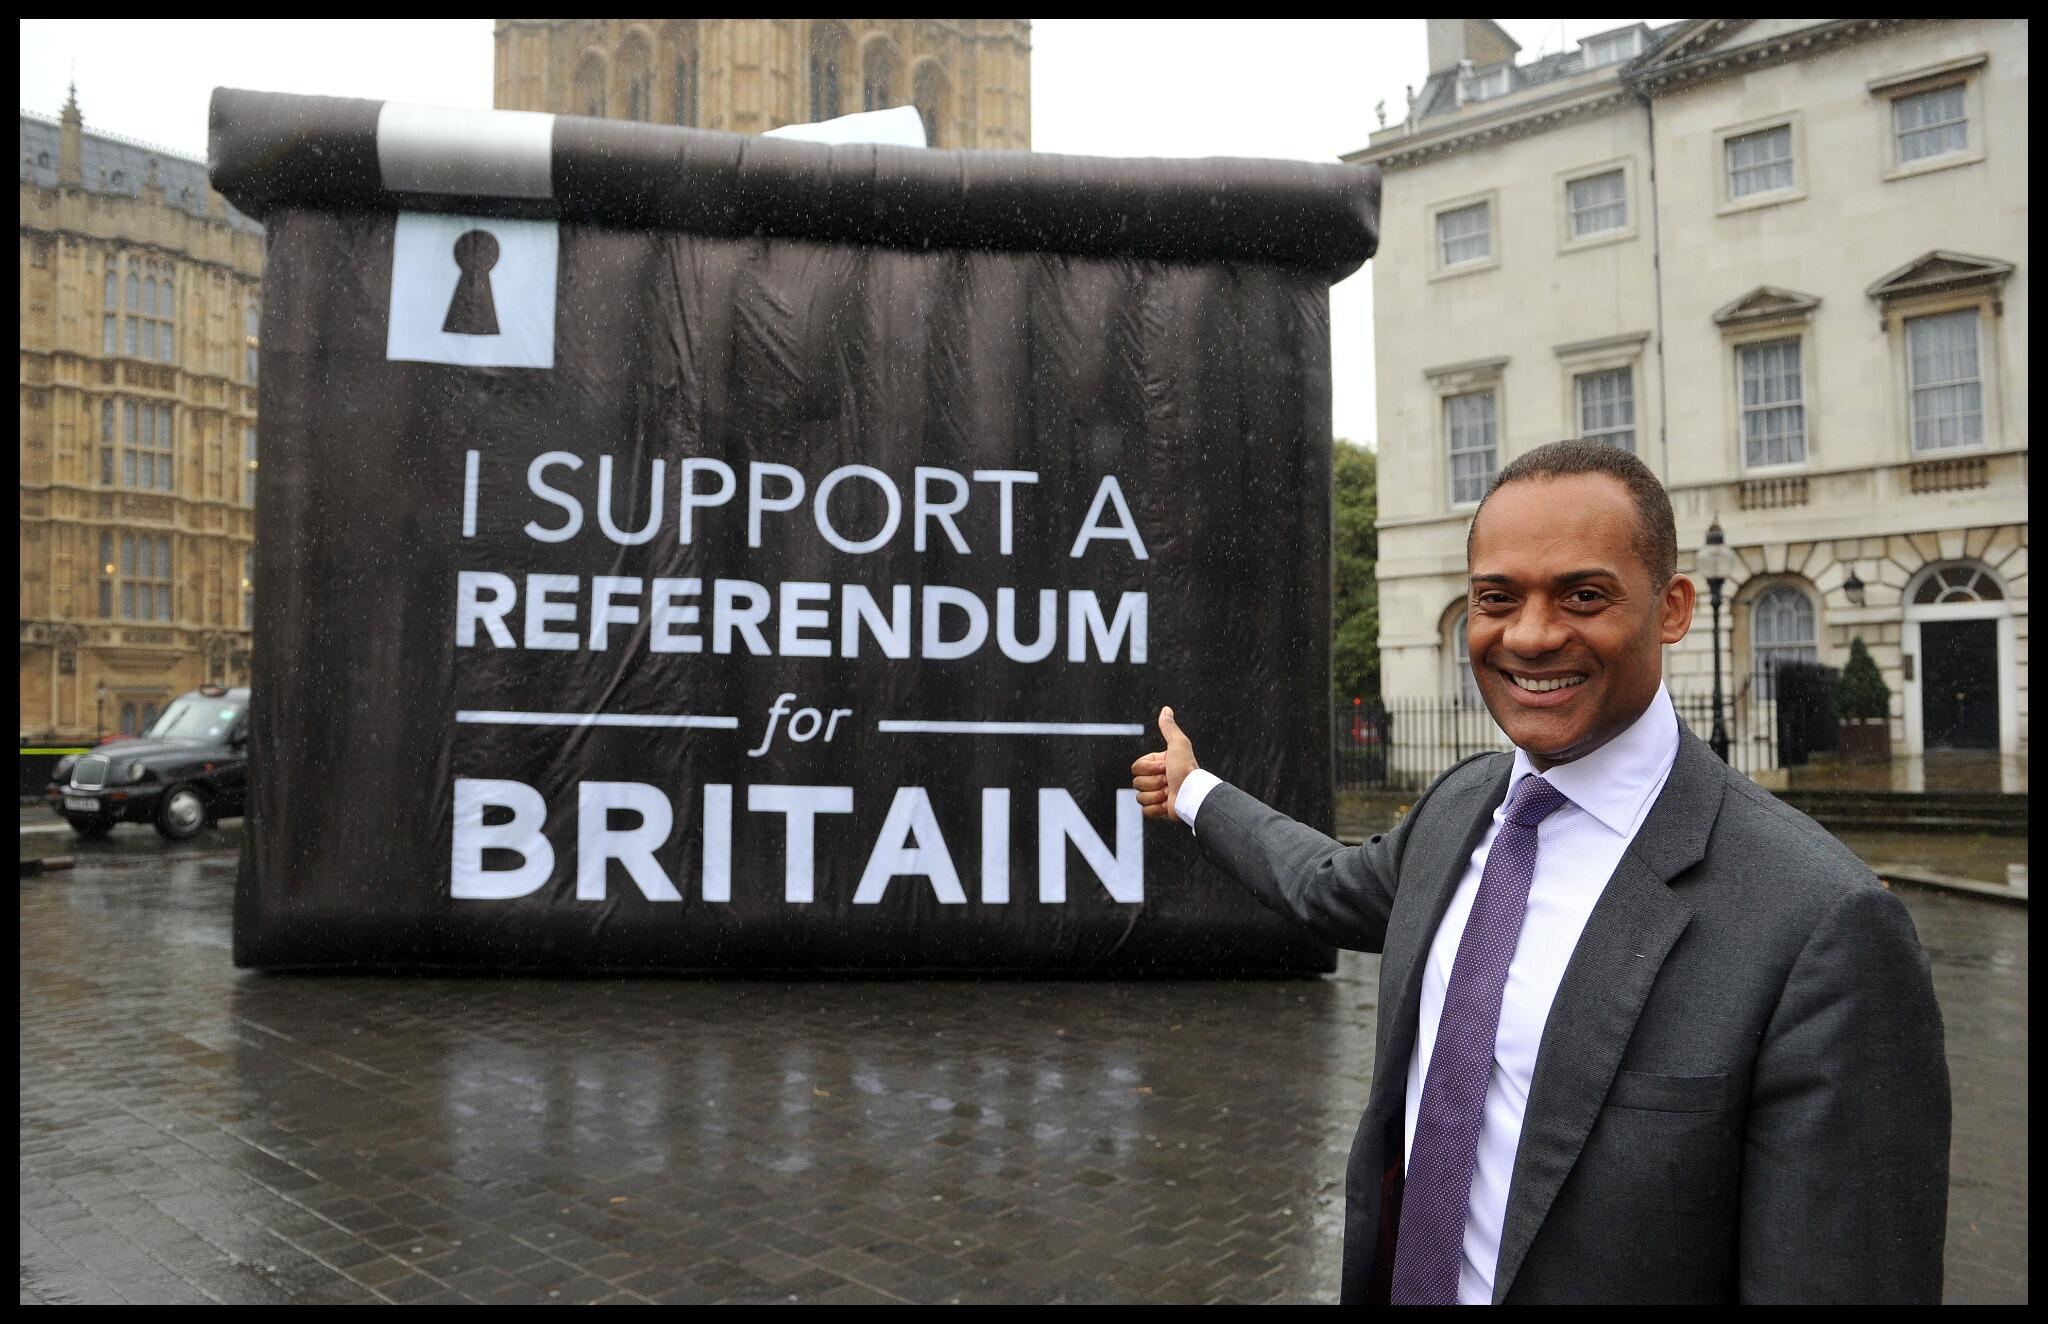 I support a referendum